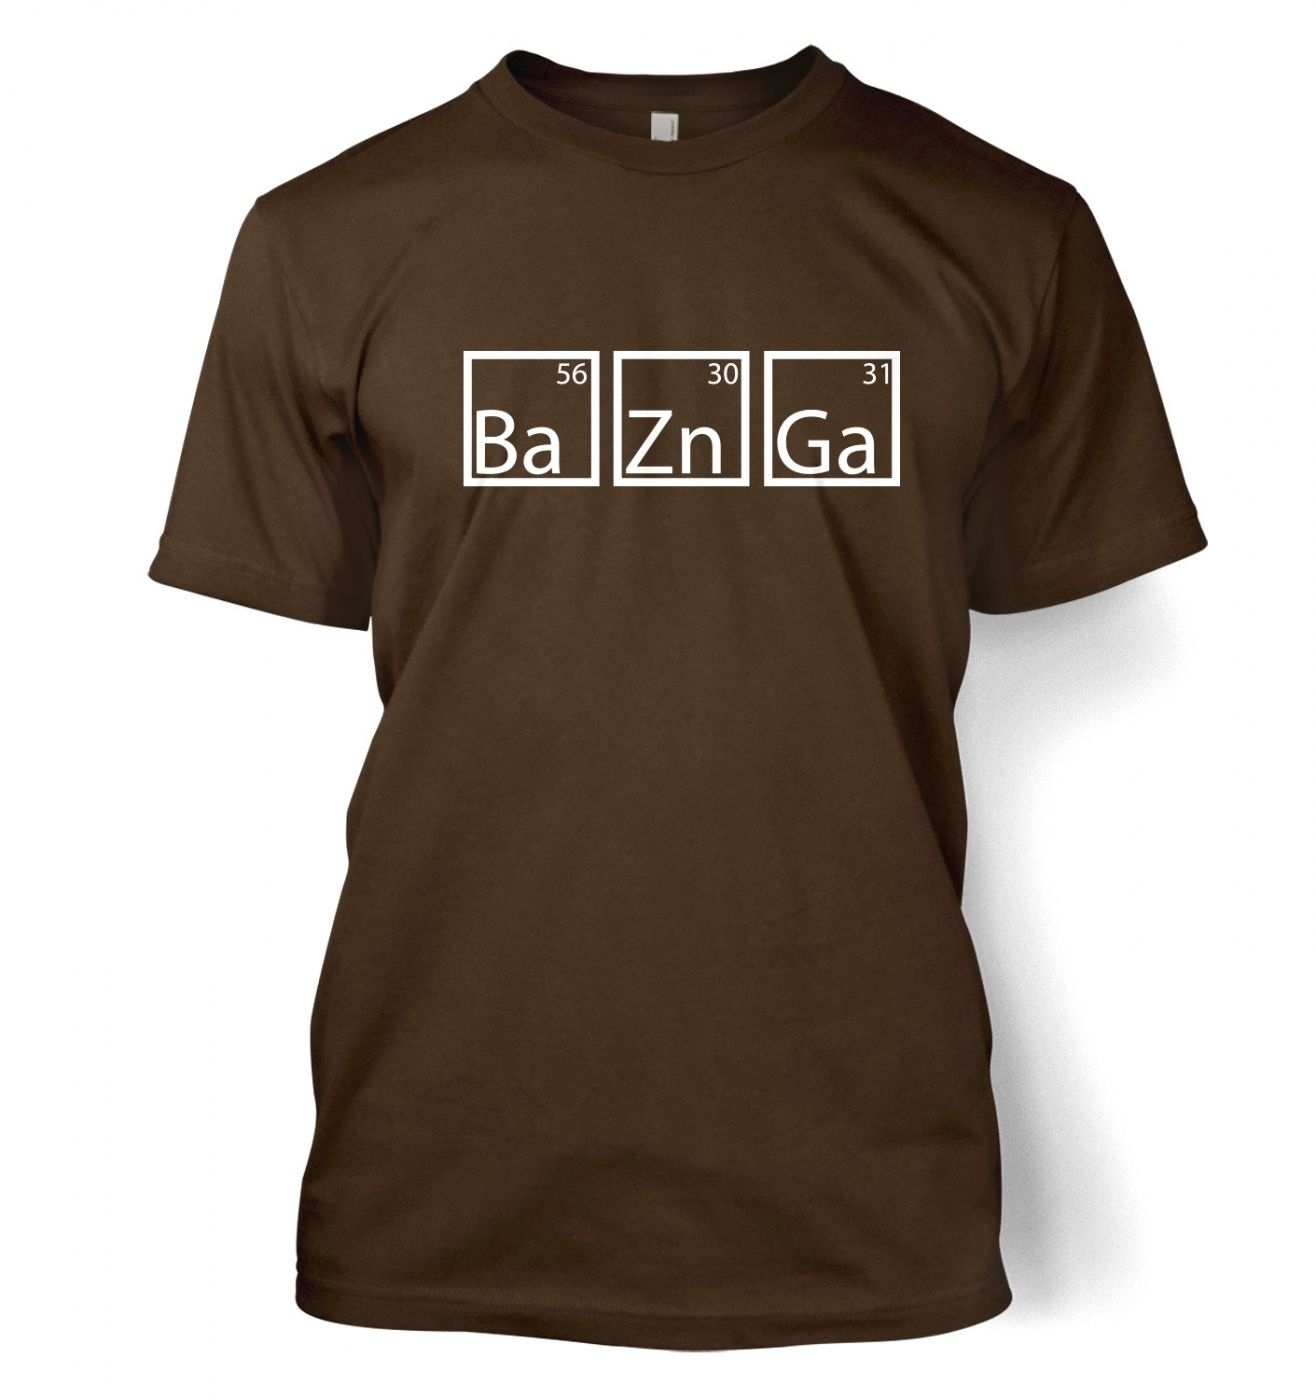 BaZnGa men's t-shirt